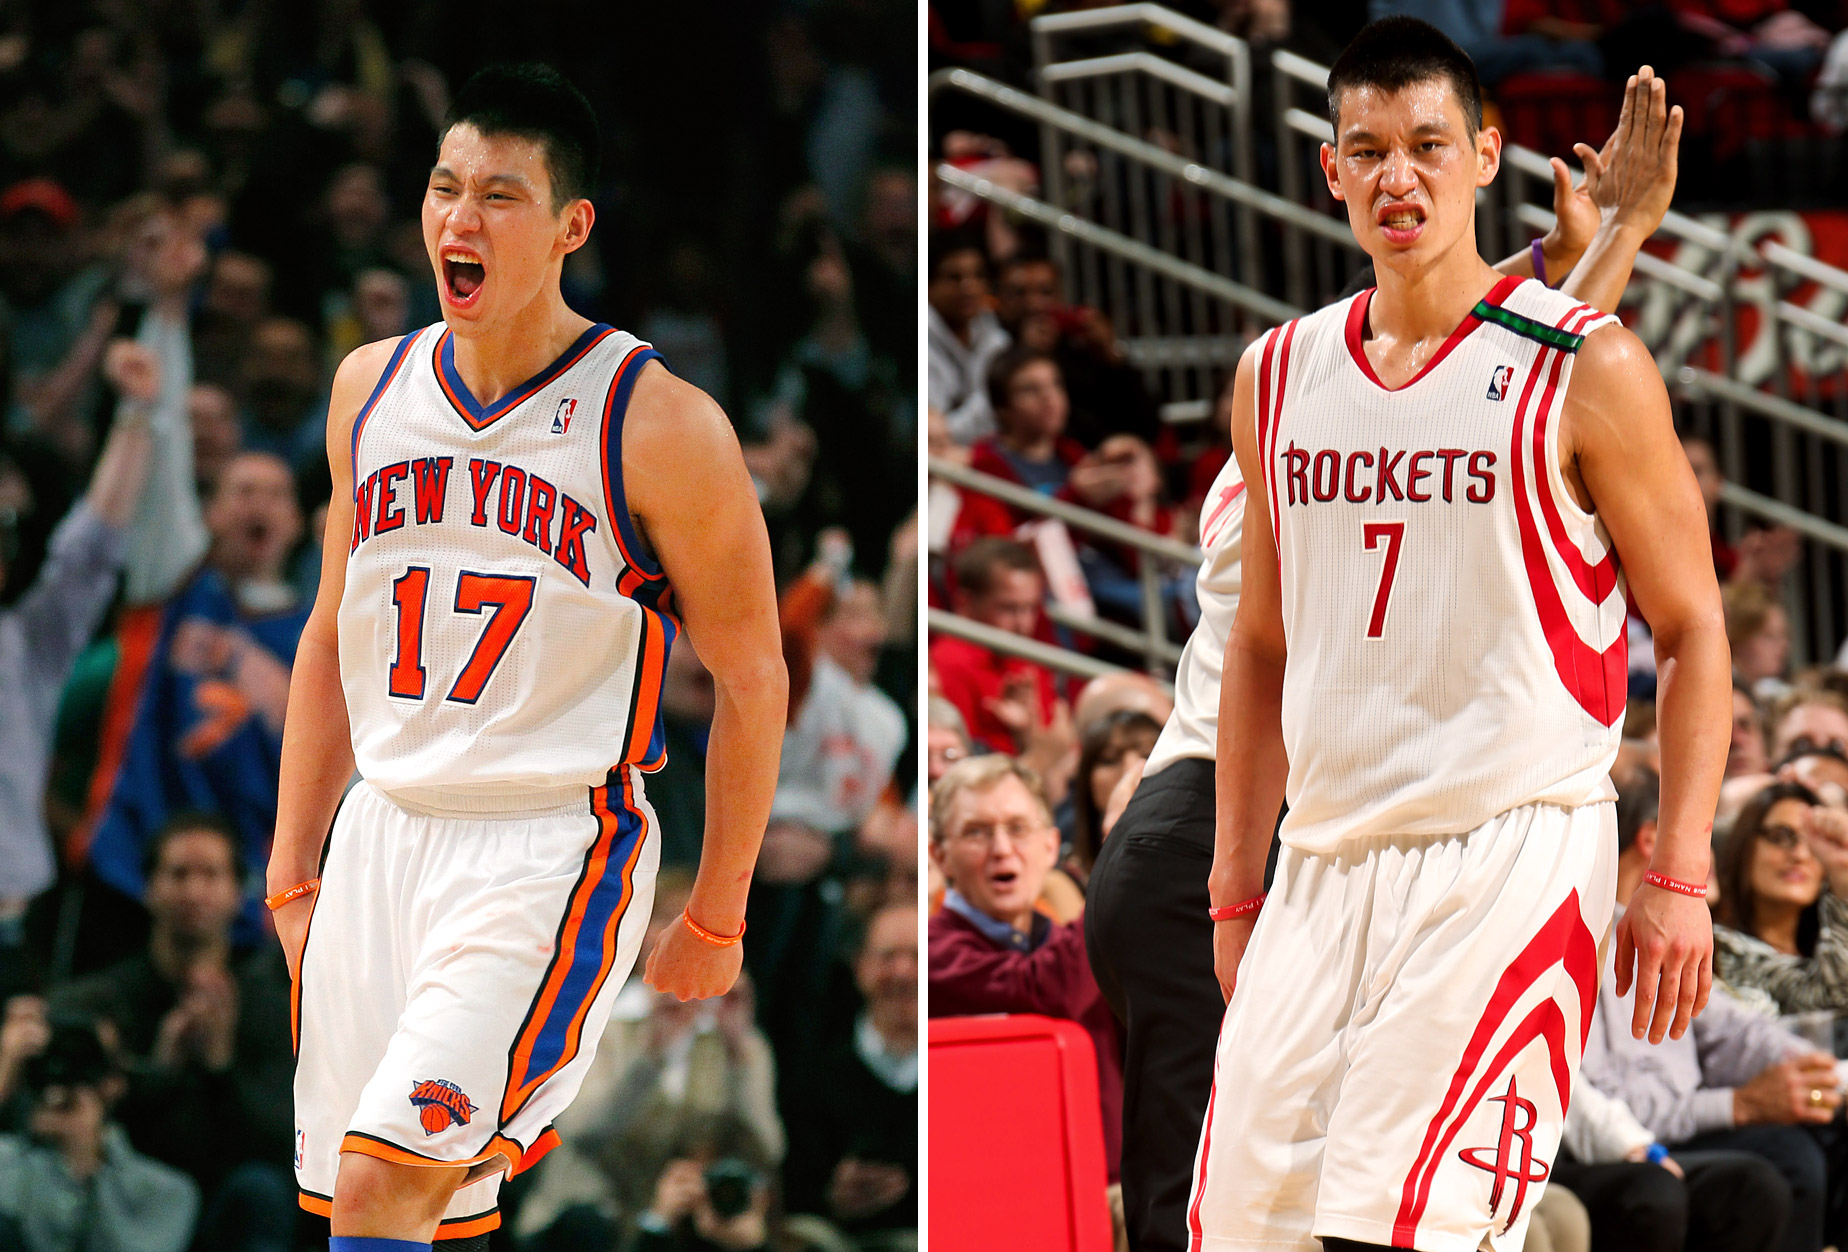 Linsanity: Photos Of The Year 2012